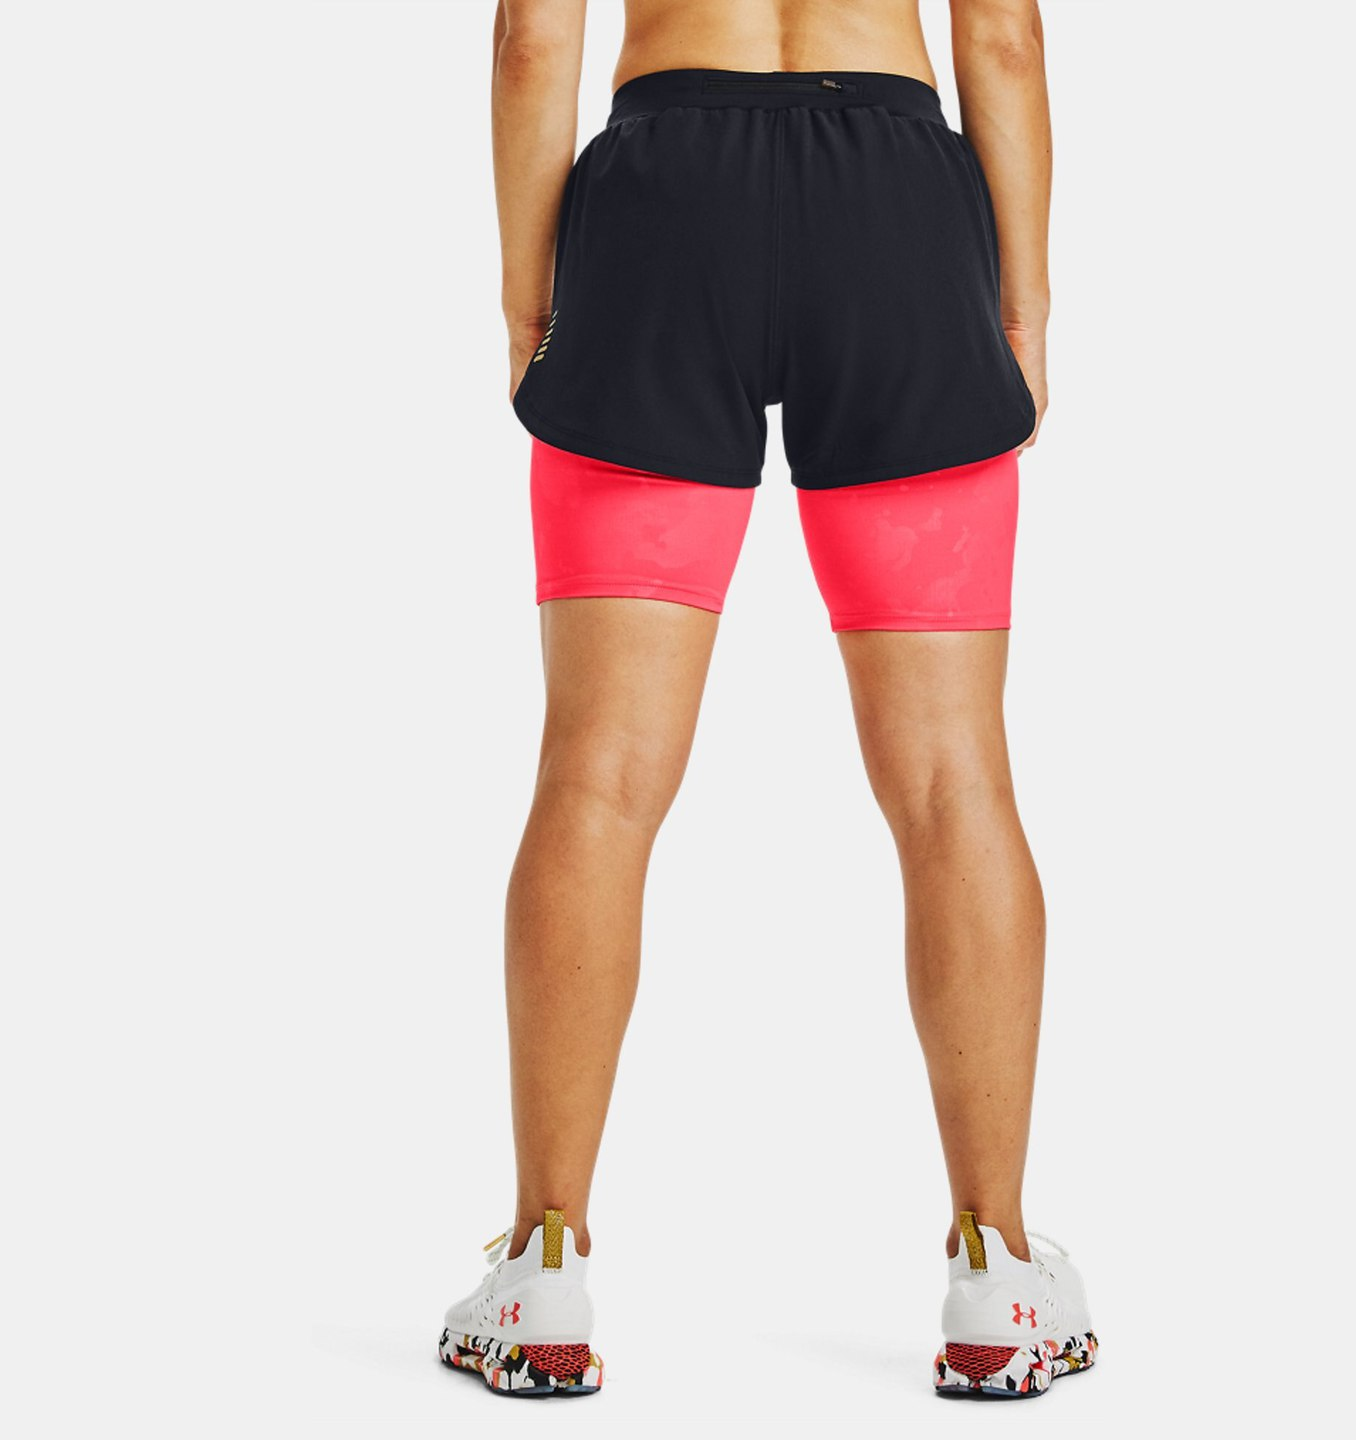 Shorts 2 in 1